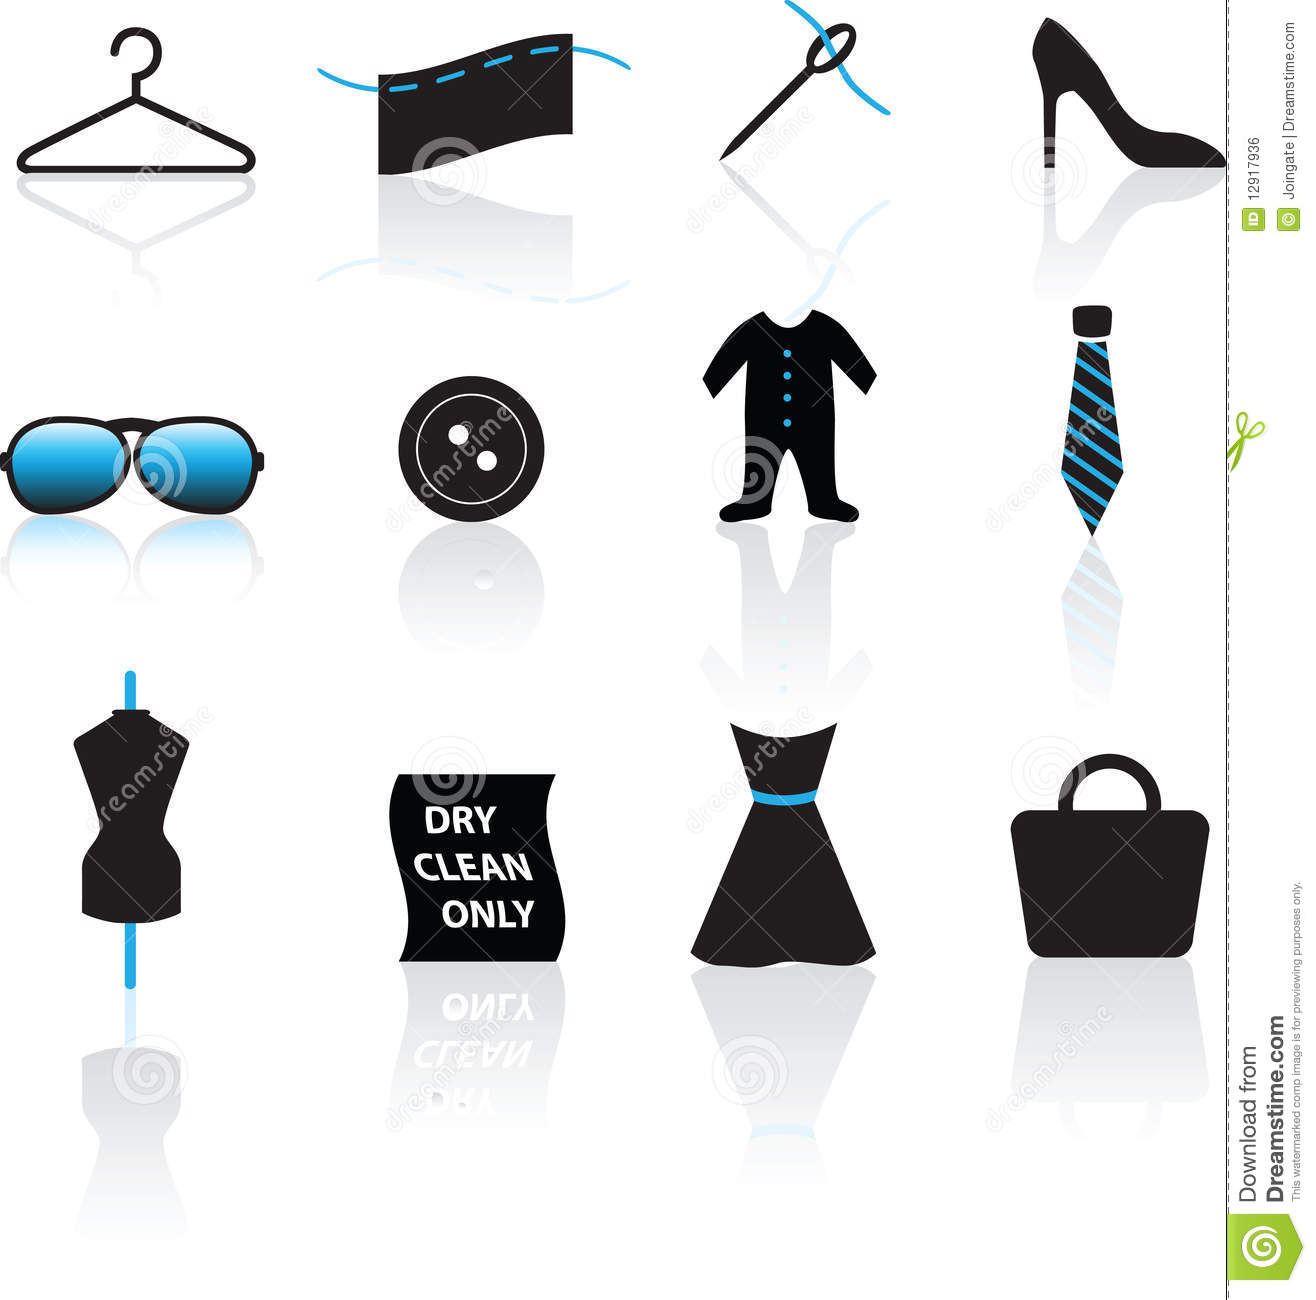 Fashion Icon Set Royalty Free Stock Image Image 12917936